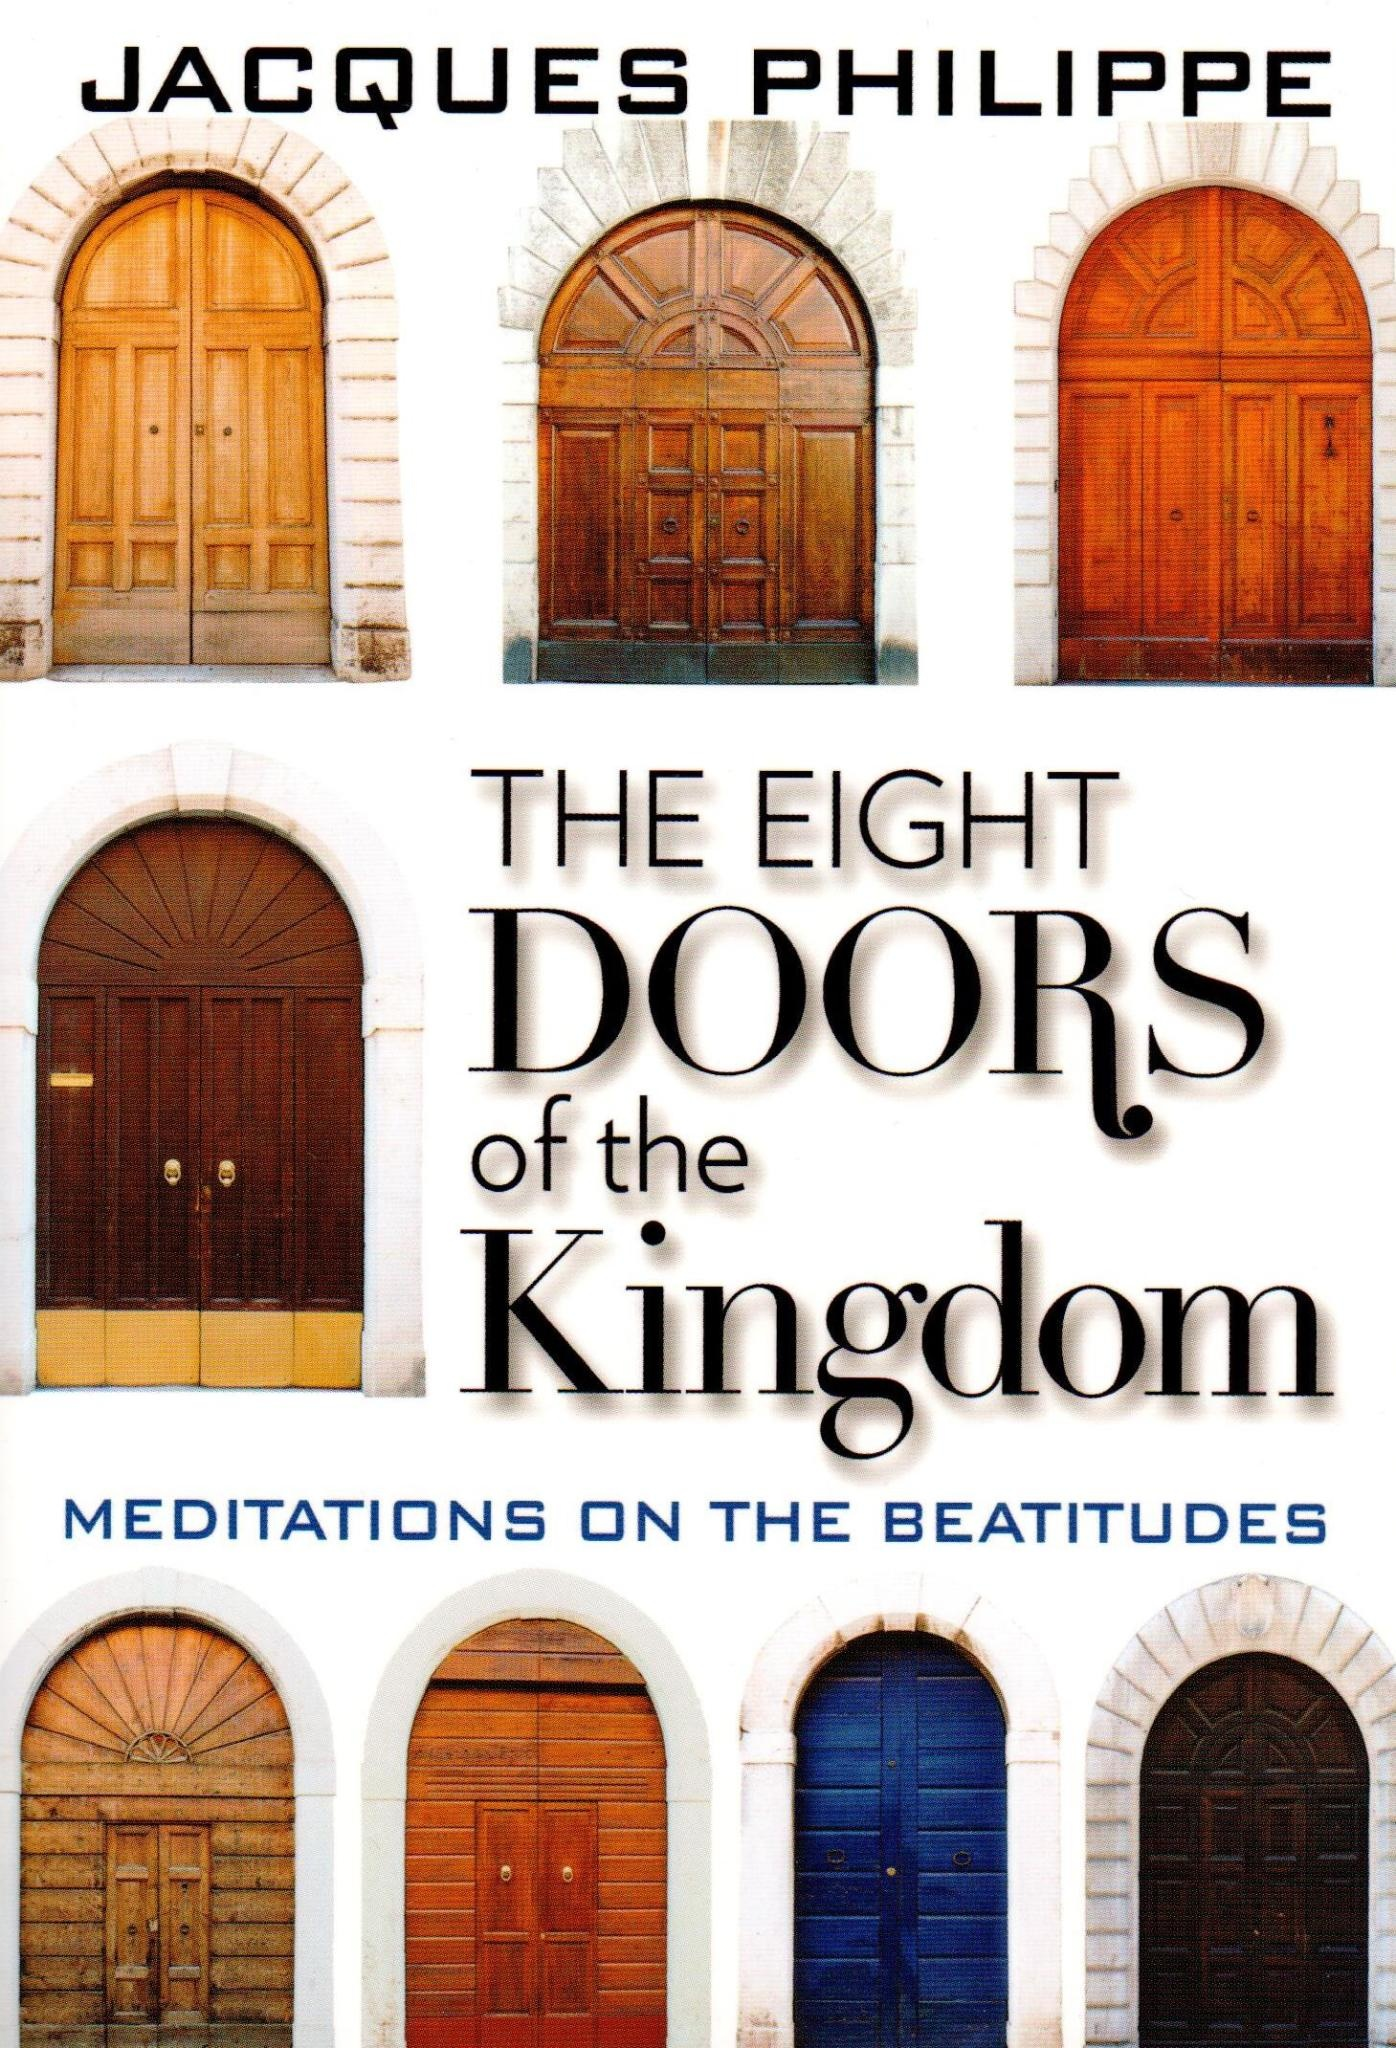 The Eight Doors of the Kingdom